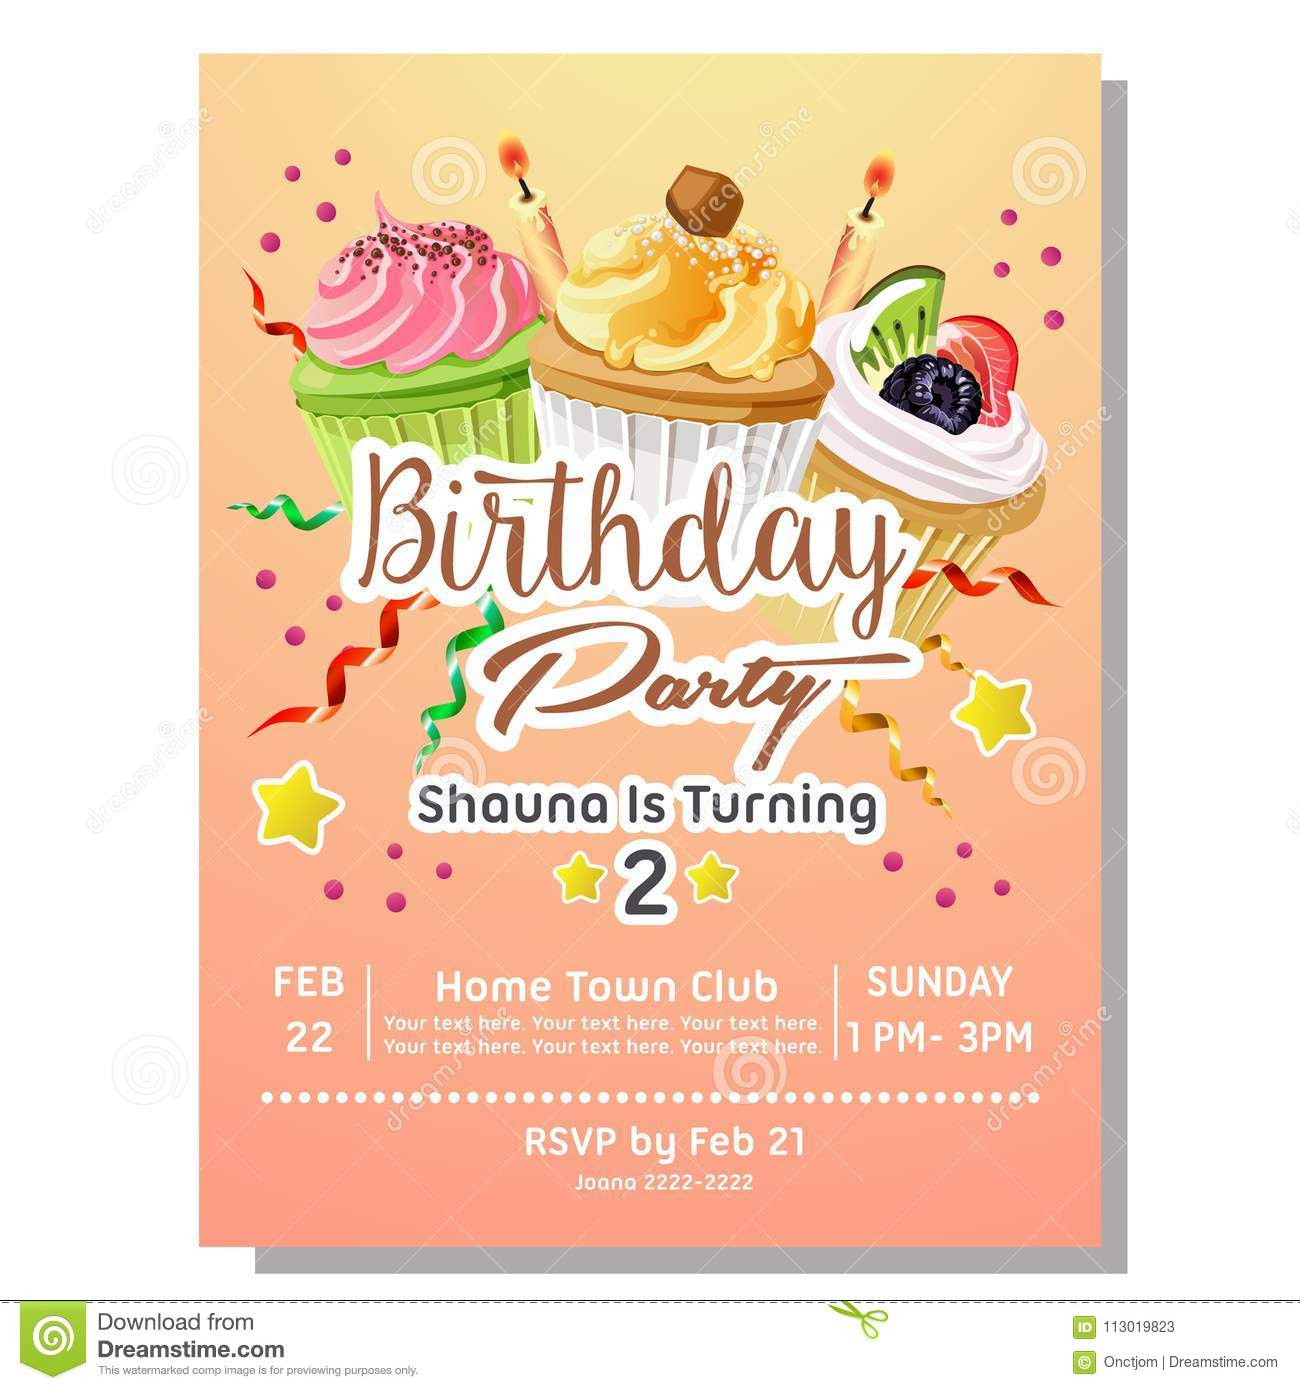 https www dreamstime com nd birthday party invitation card template delicious cupcakes nd birthday party invitation card delicious cupcakes image113019823